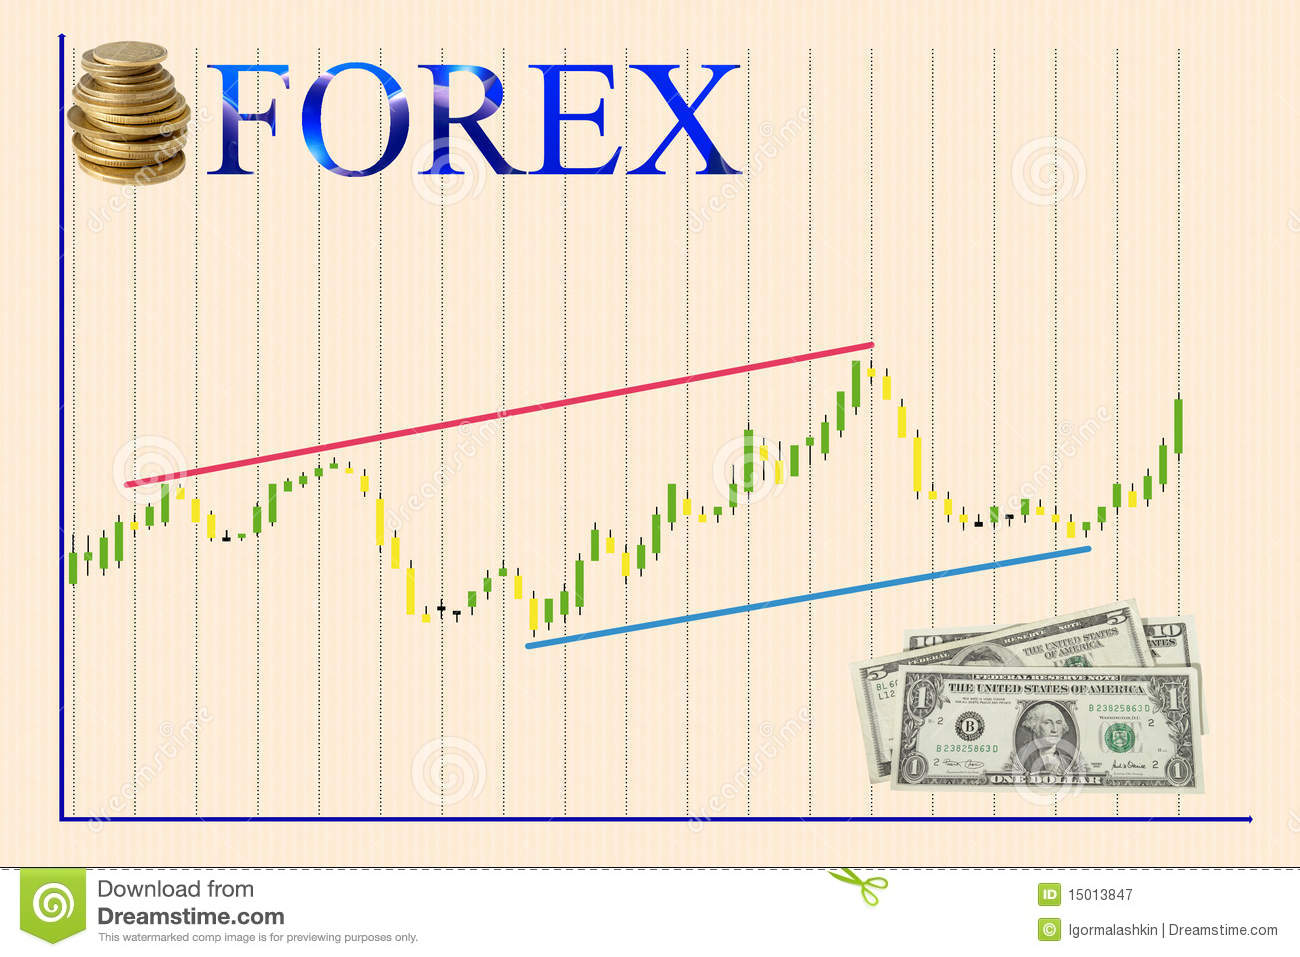 Forex as a main business